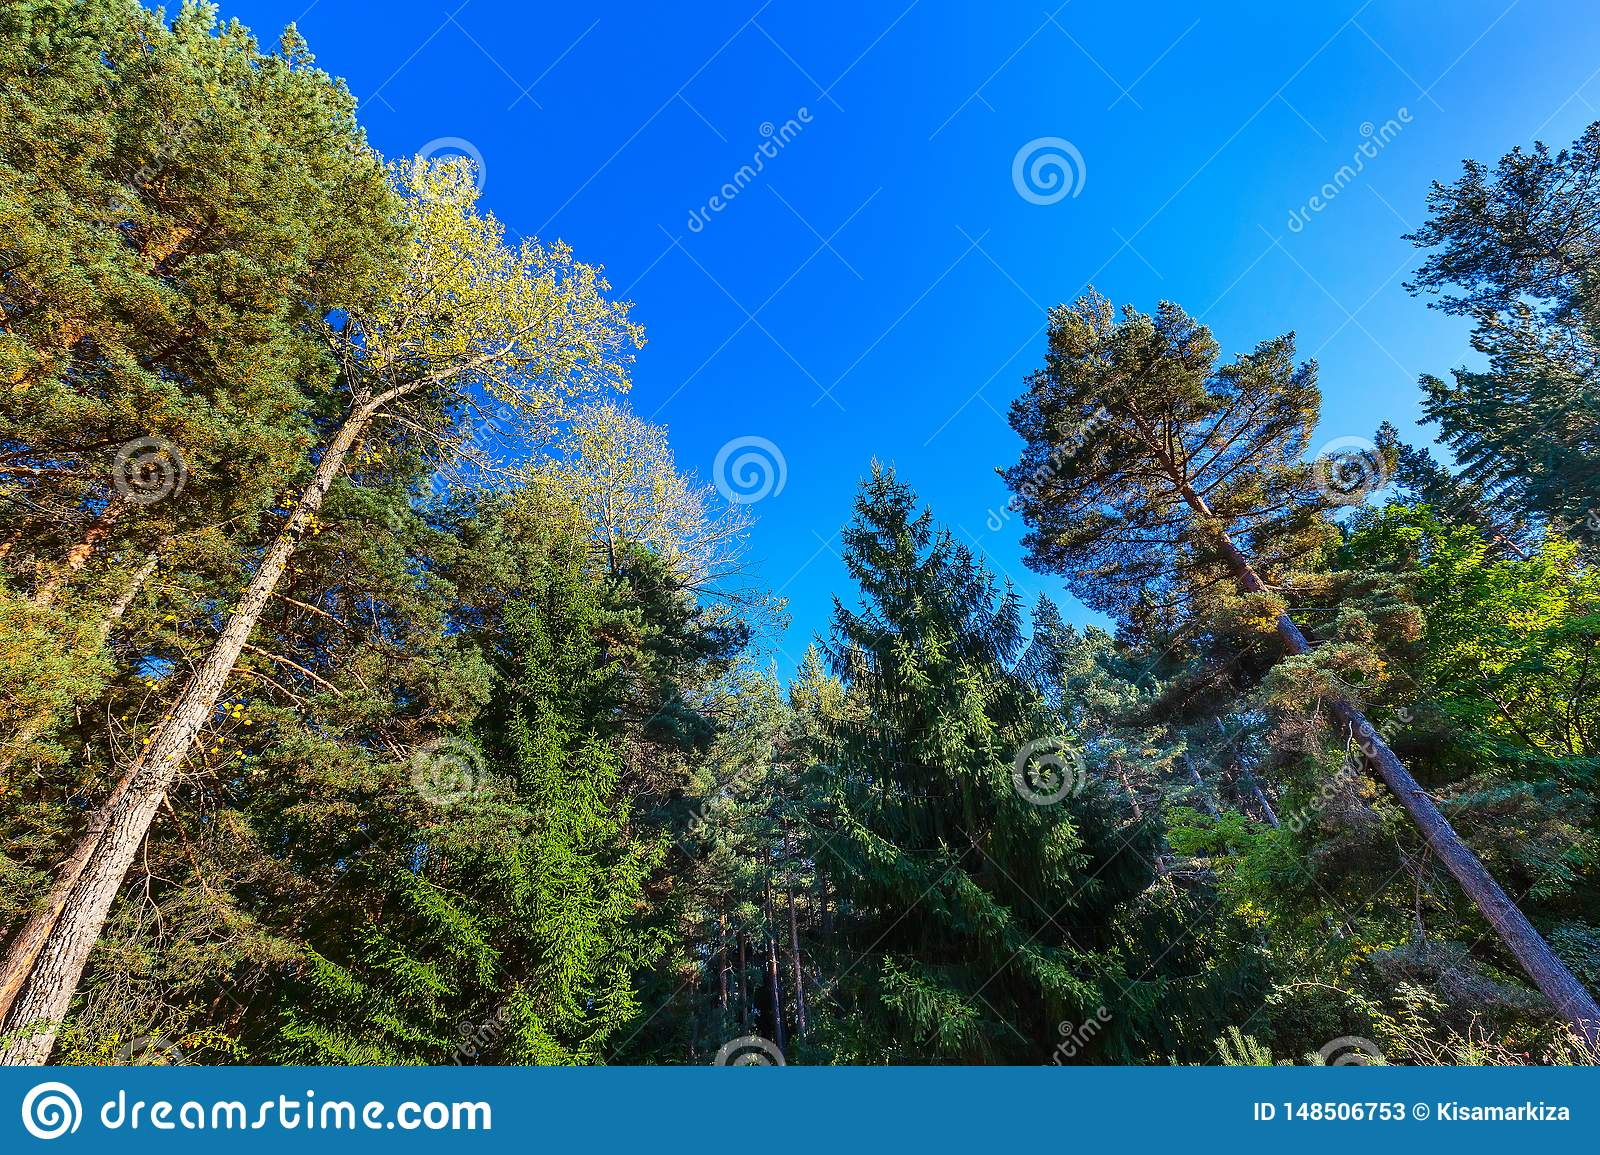 Looking up autumn trees forest background